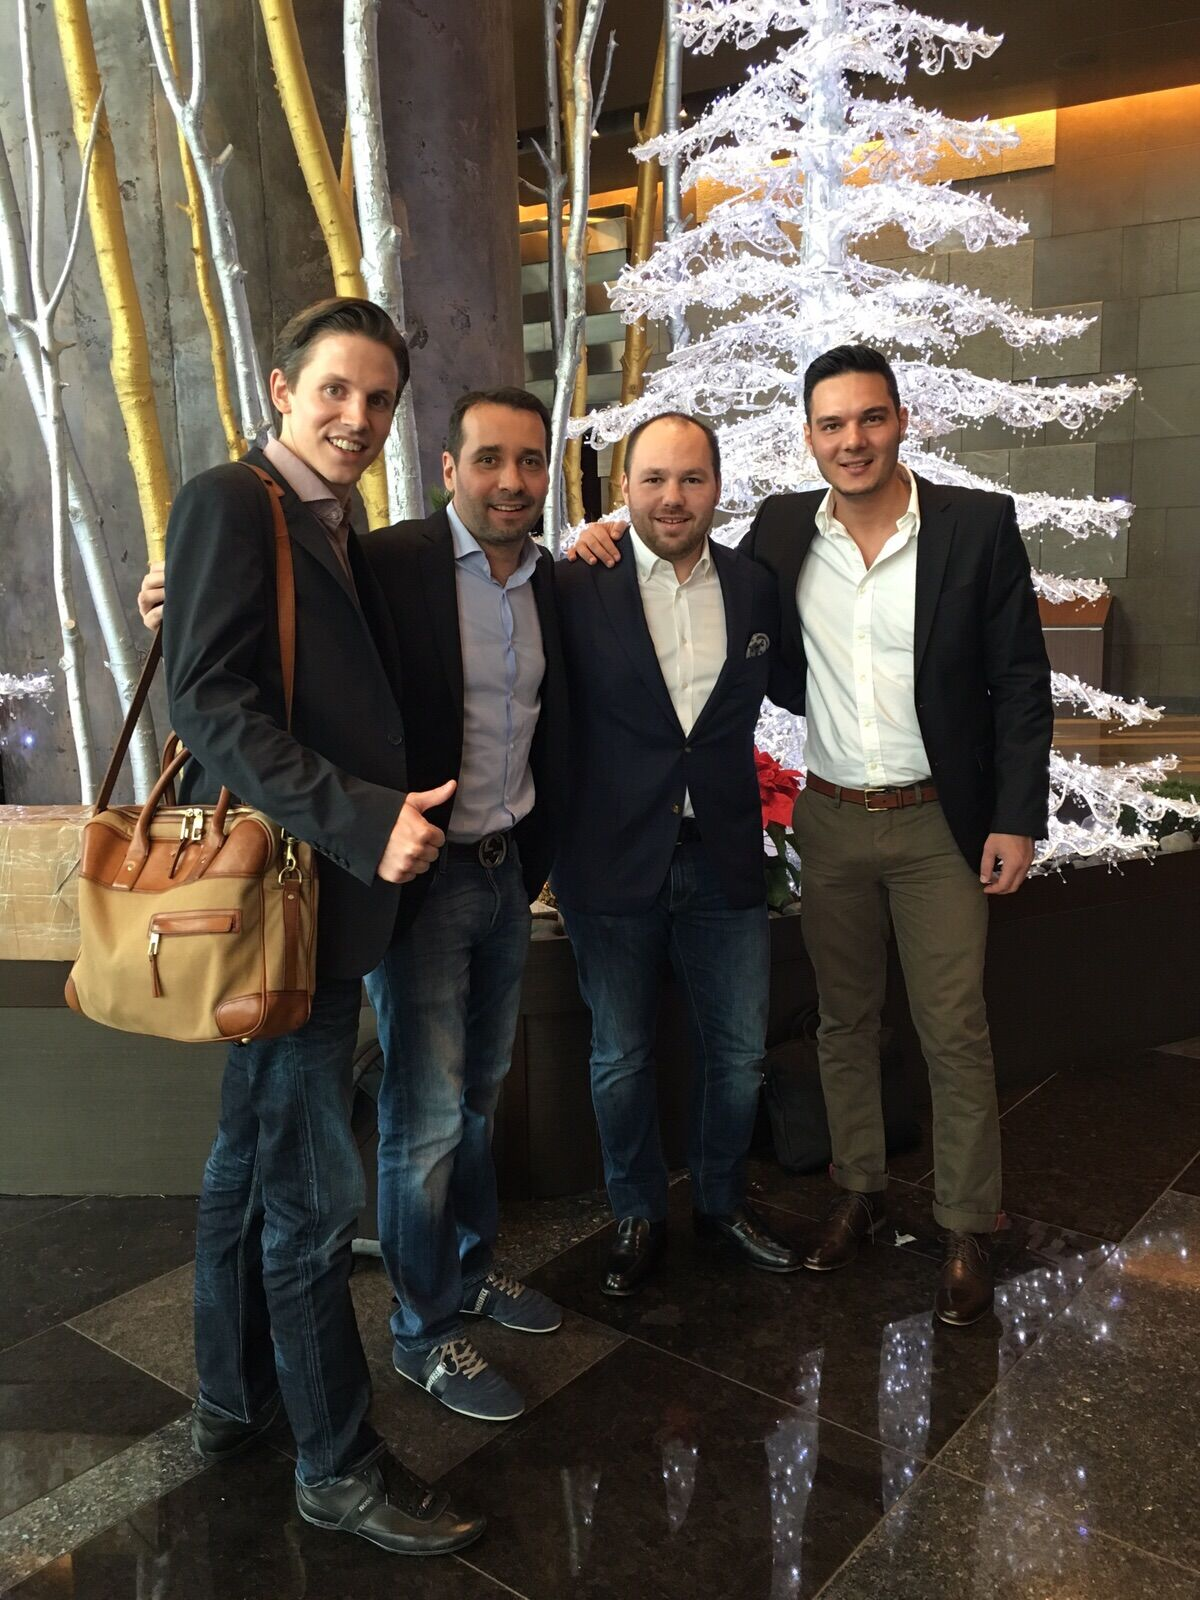 our team at the Expedia conference included Johannes Thomas, Jose Murta, Sergio Gutierrez, and Ioannis Savvidis